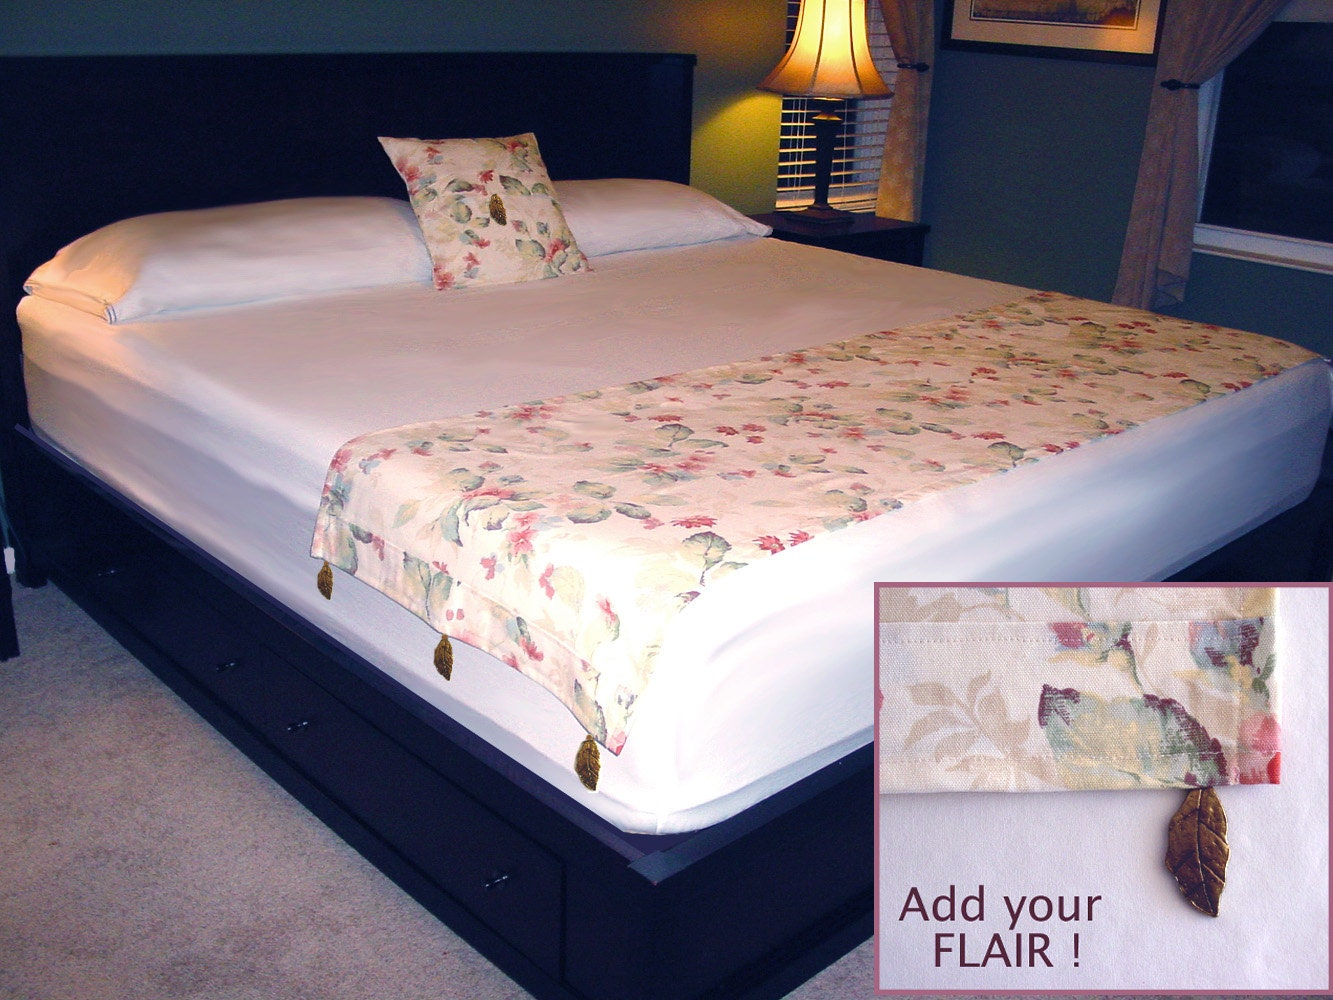 Find a great collection of Bedding Bedding at Costco. Enjoy low warehouse prices on name-brand Bedding products.